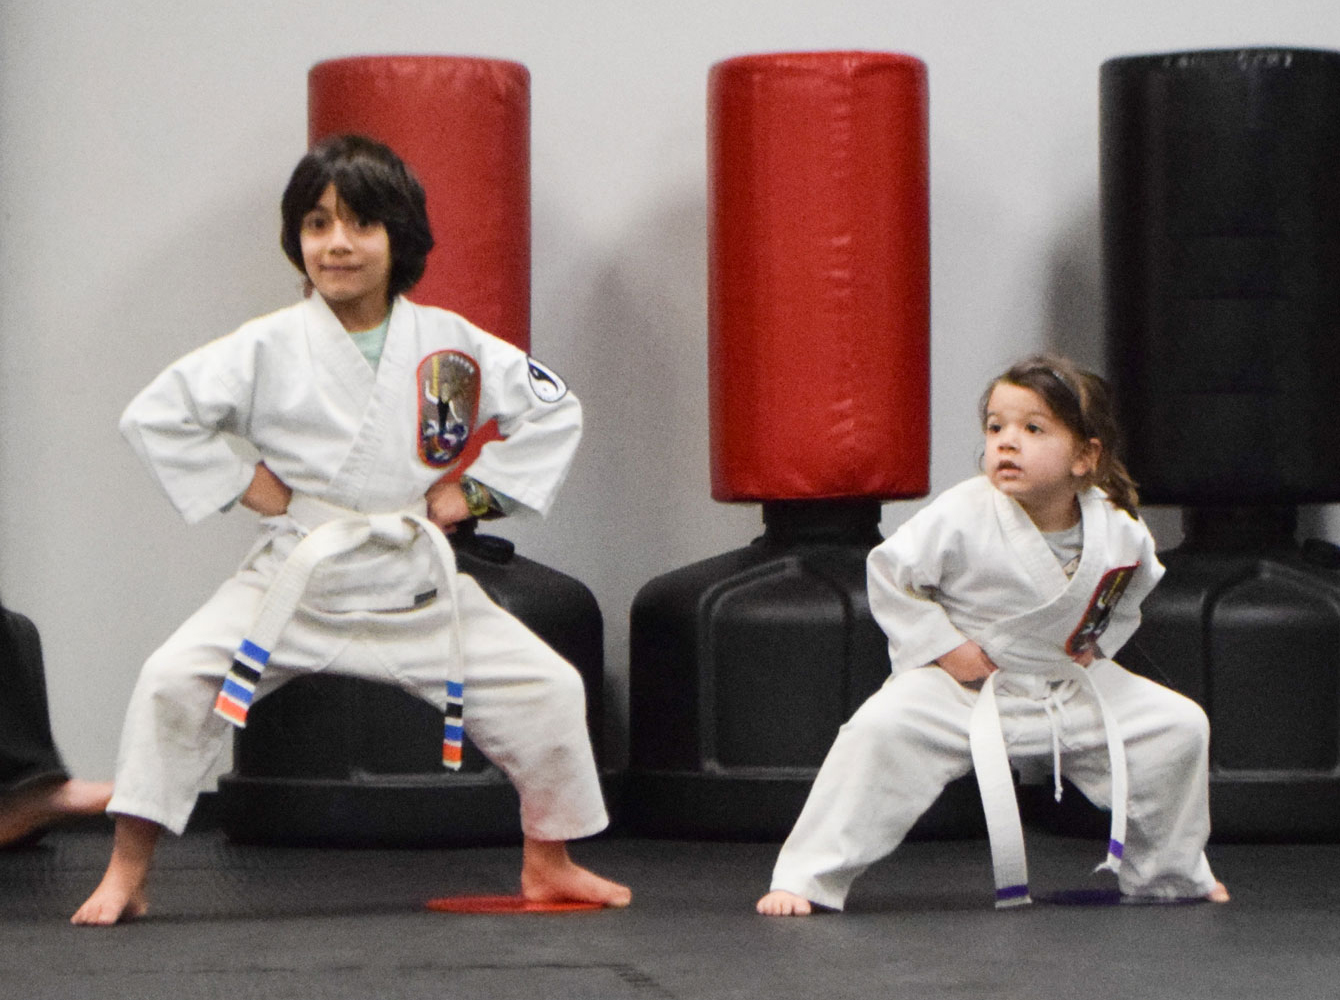 2 Little GEMs in a stance in front of kick bags